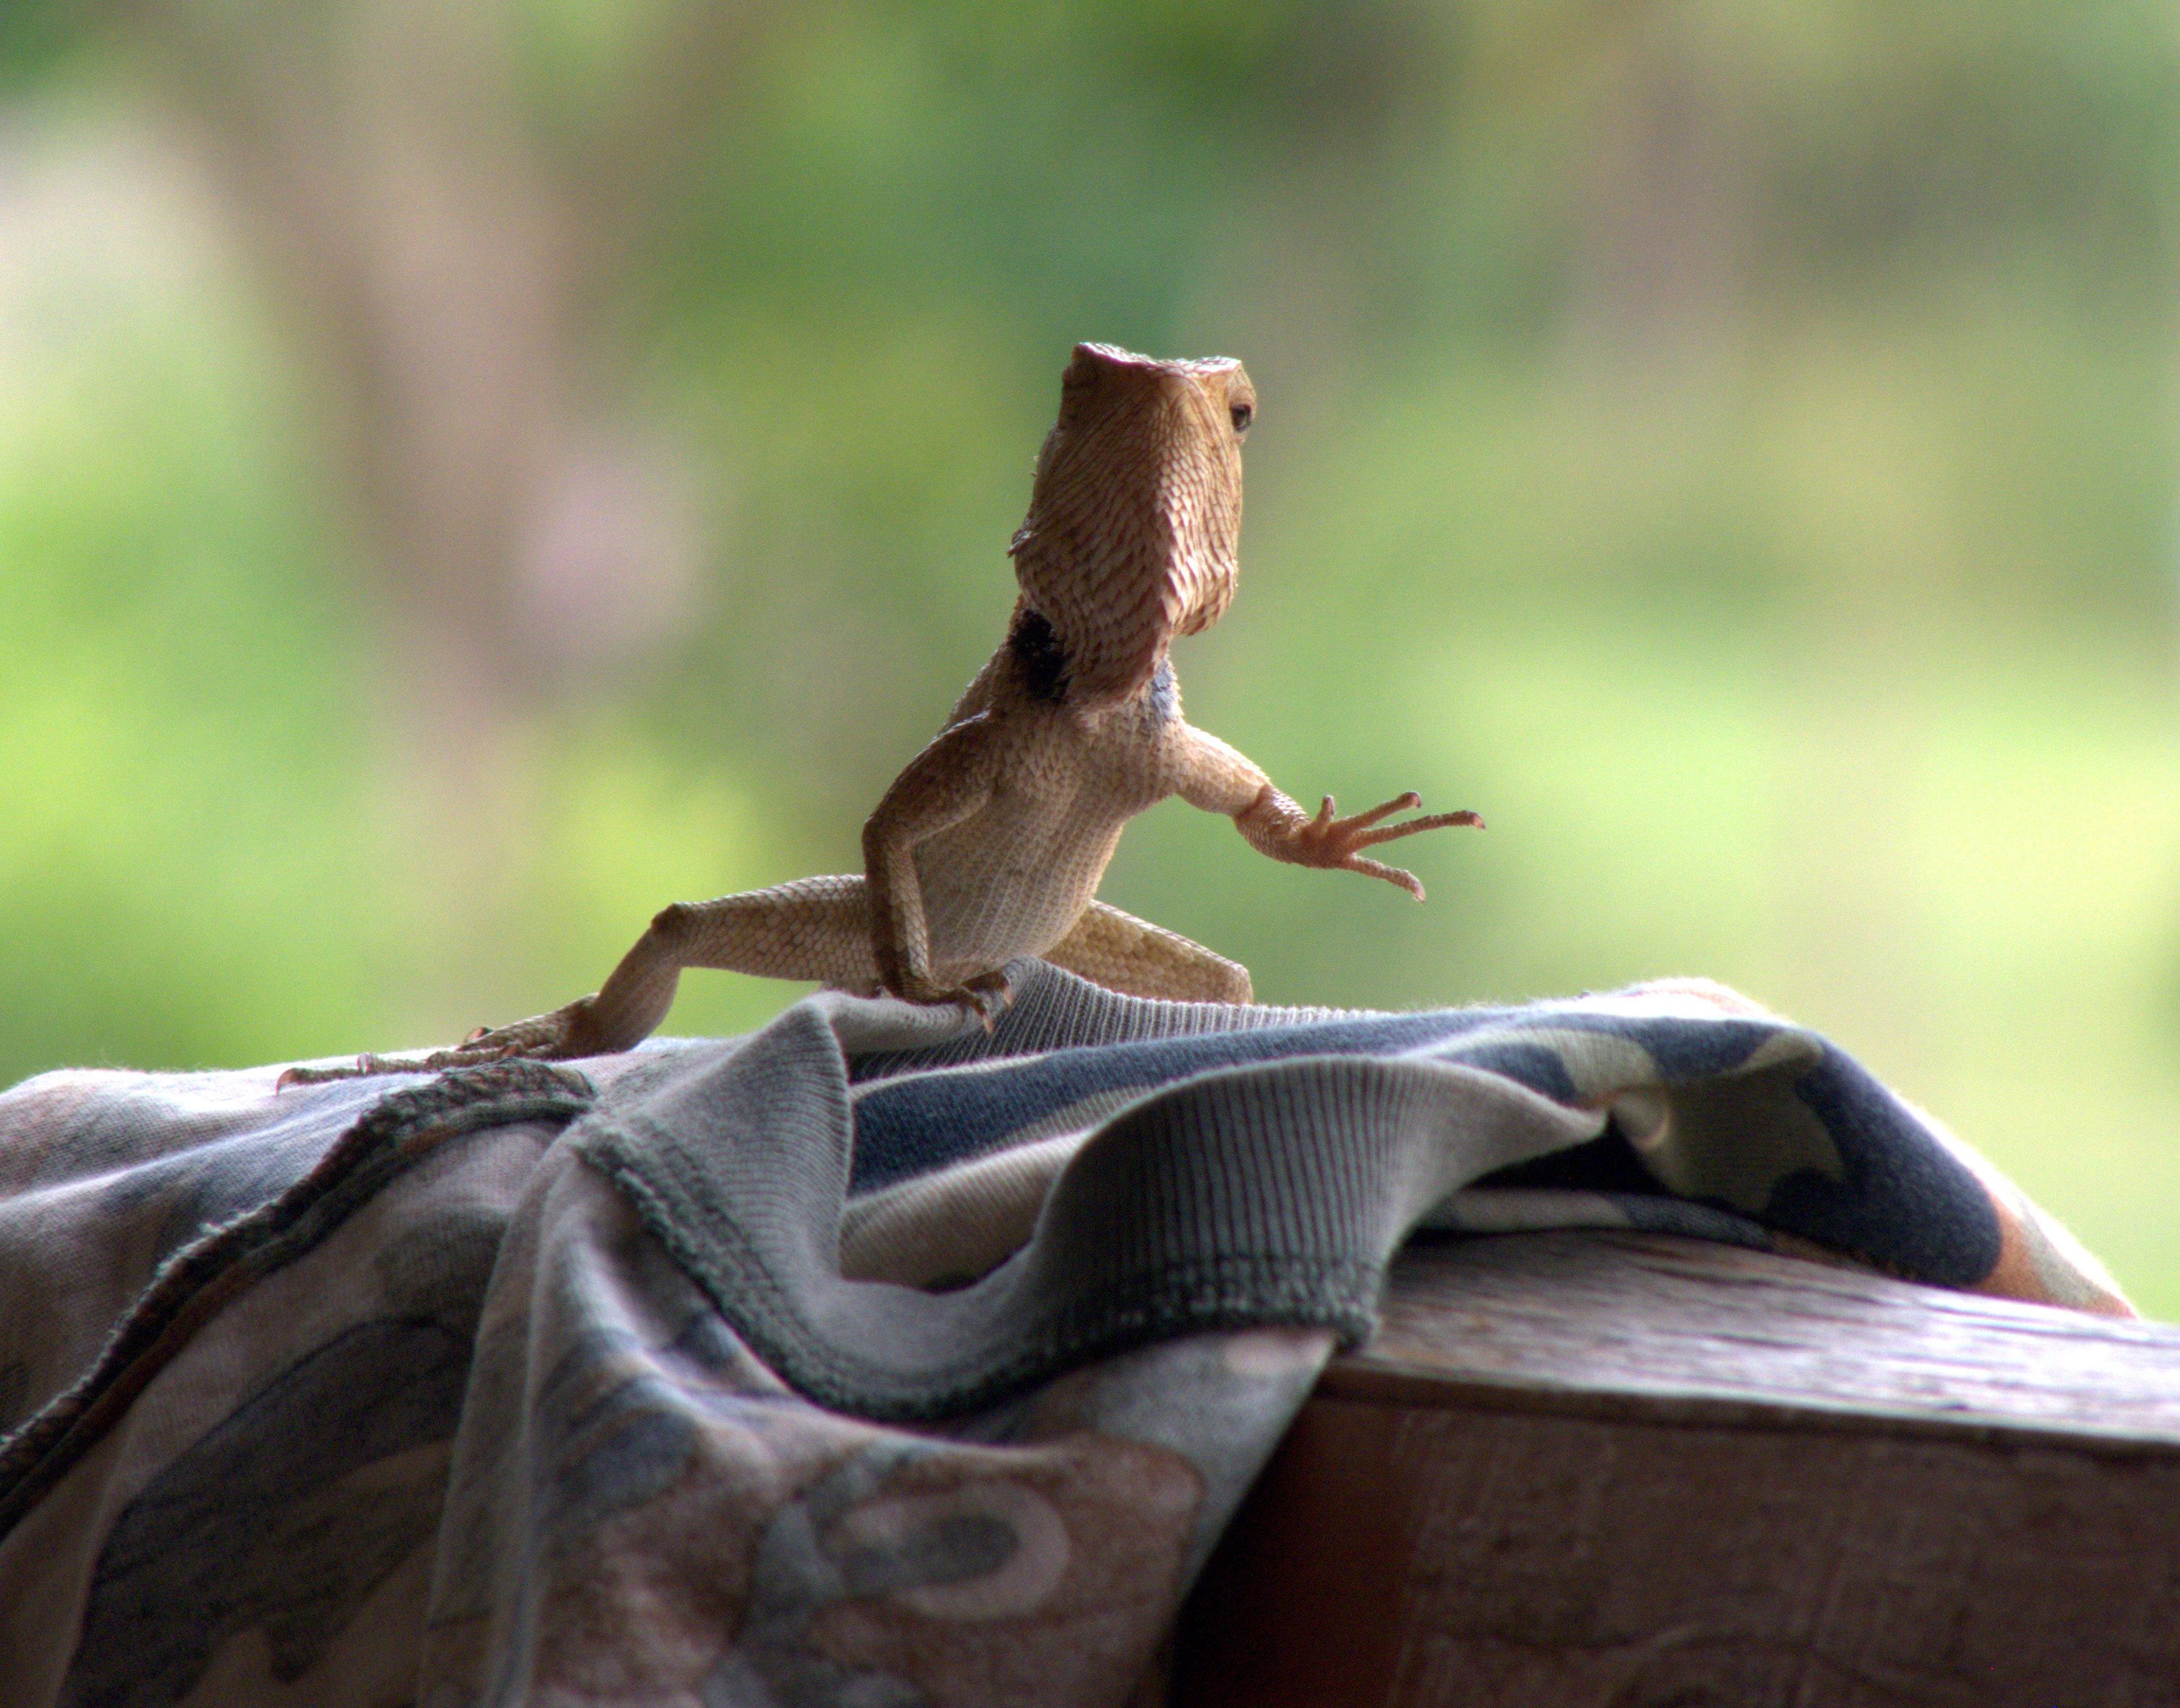 Top 5 Tips To Get Rid Of Lizards At Home